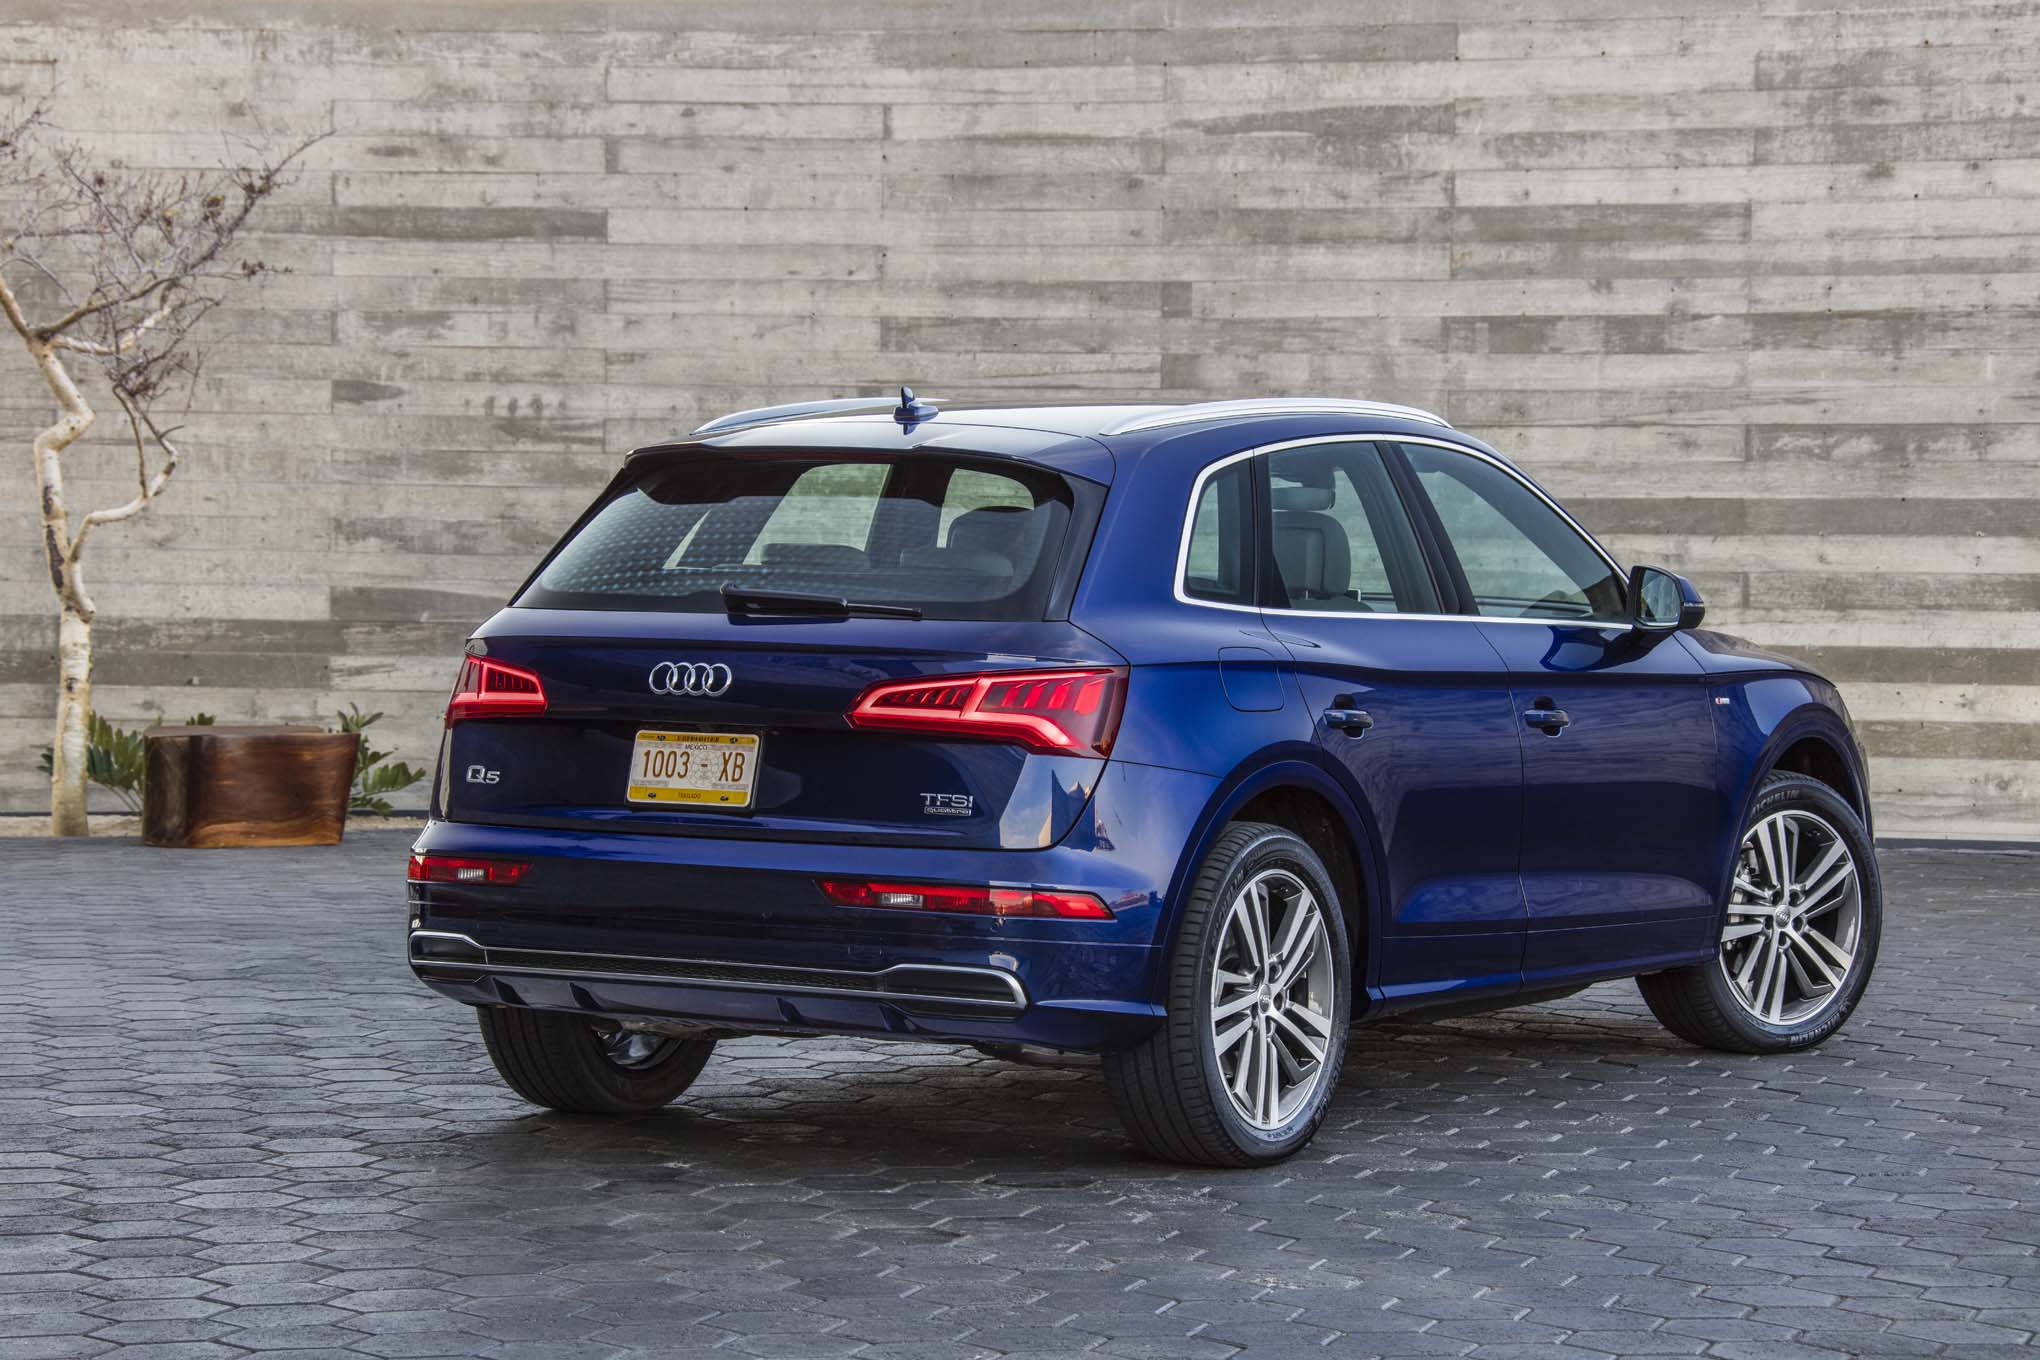 2018 Audi Sq5 Release Date And Review >> 2018 Audi Q5 First Drive Review Automobile Magazine